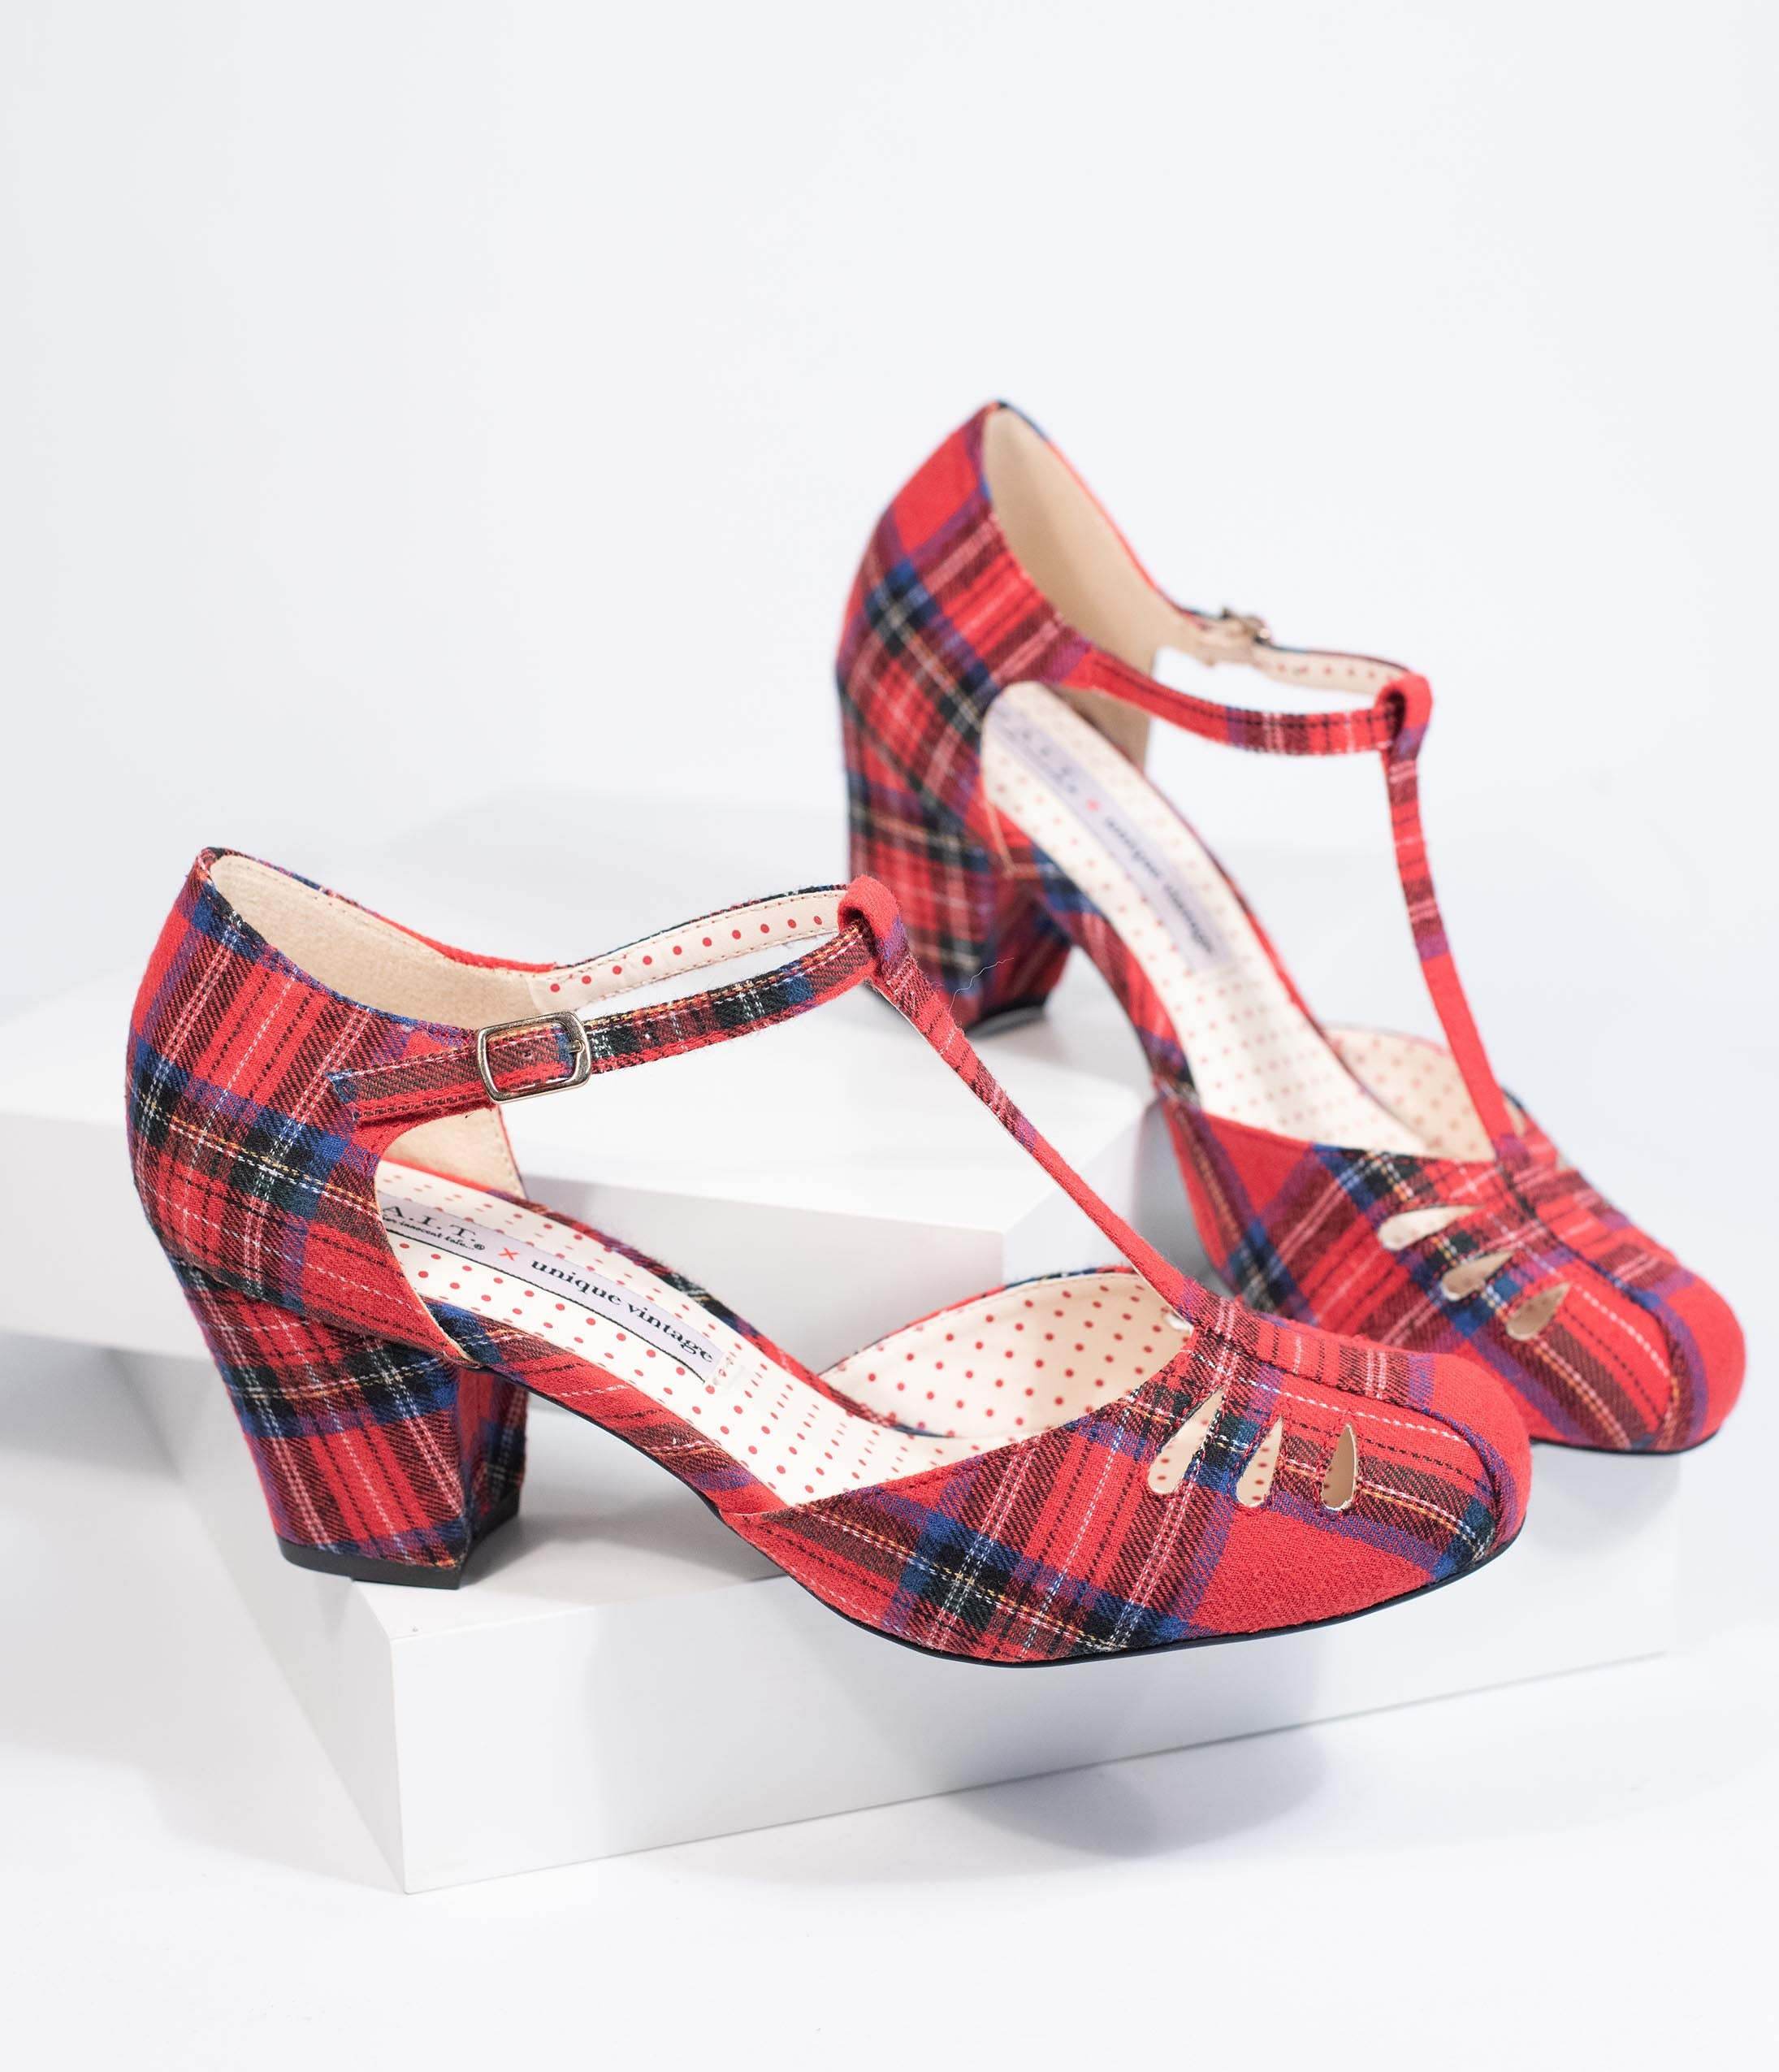 1950s Shoe Styles: Heels, Flats, Sandals, Saddles Shoes B.a.i.t. X Unique Vintage 1940S Red Plaid T-Strap Robbie Heels $69.00 AT vintagedancer.com